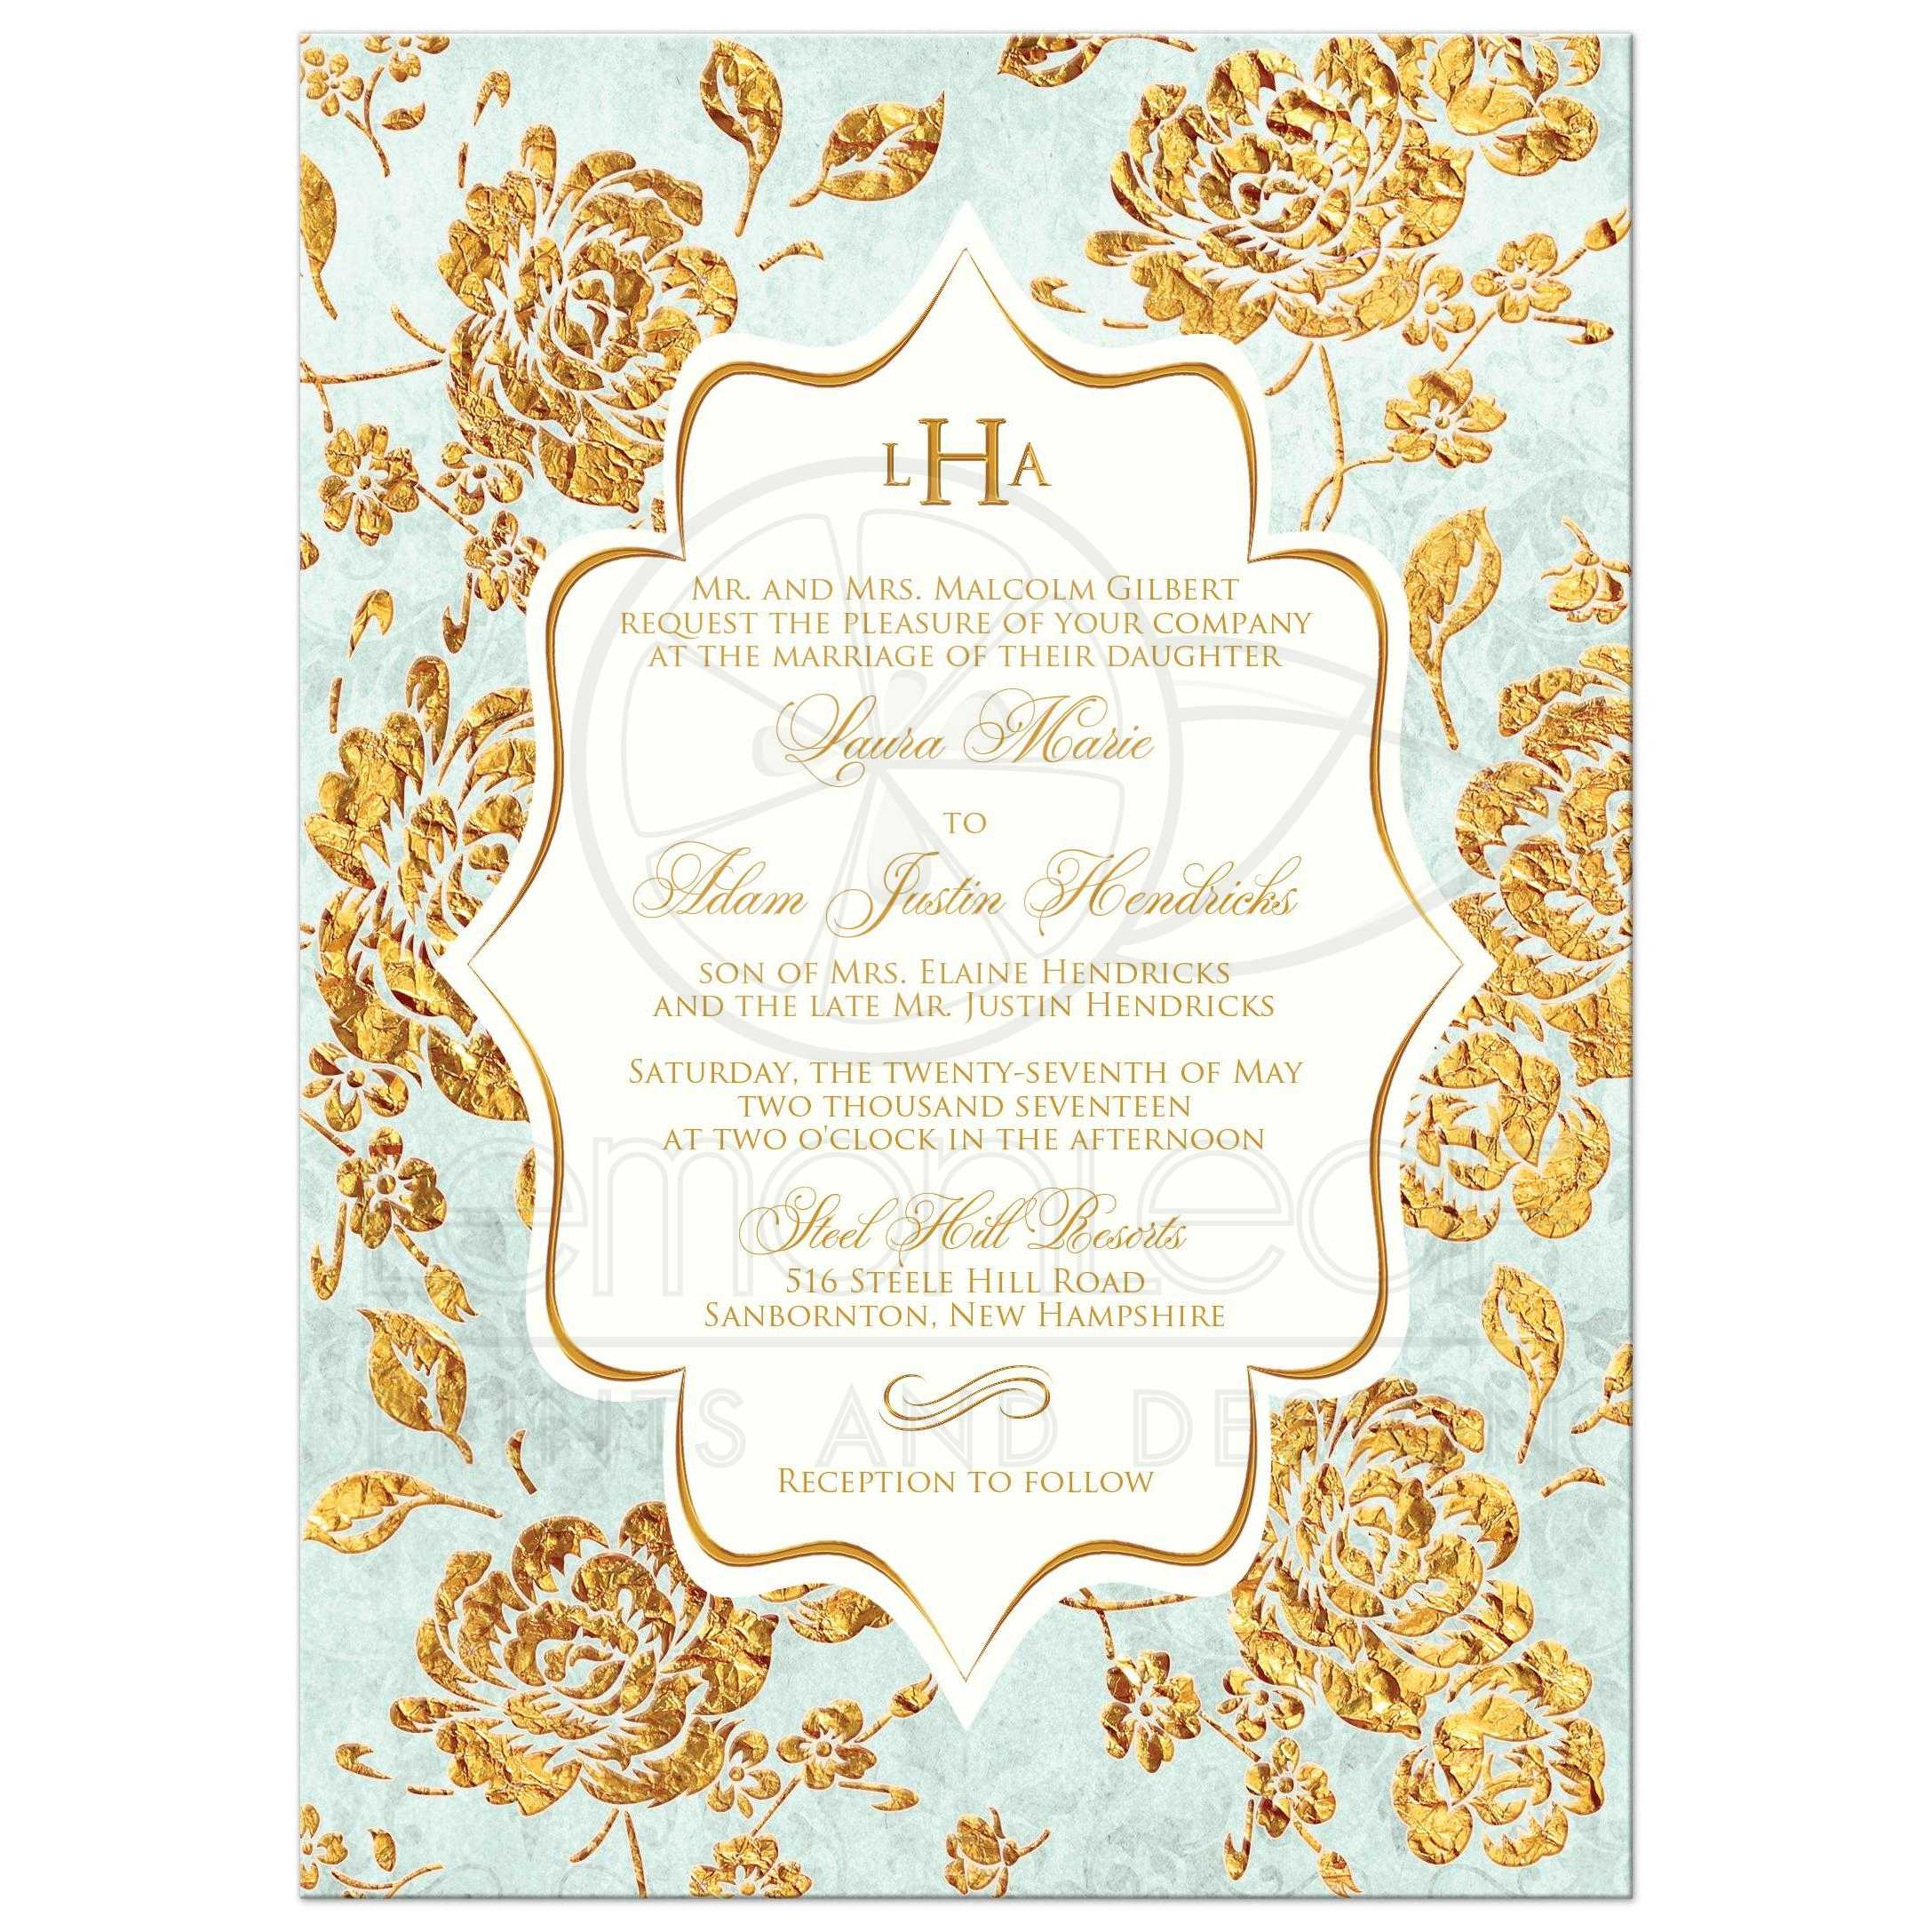 Monogrammed Vintage Floral Wedding Invitation | Mint Green, Ivory ...